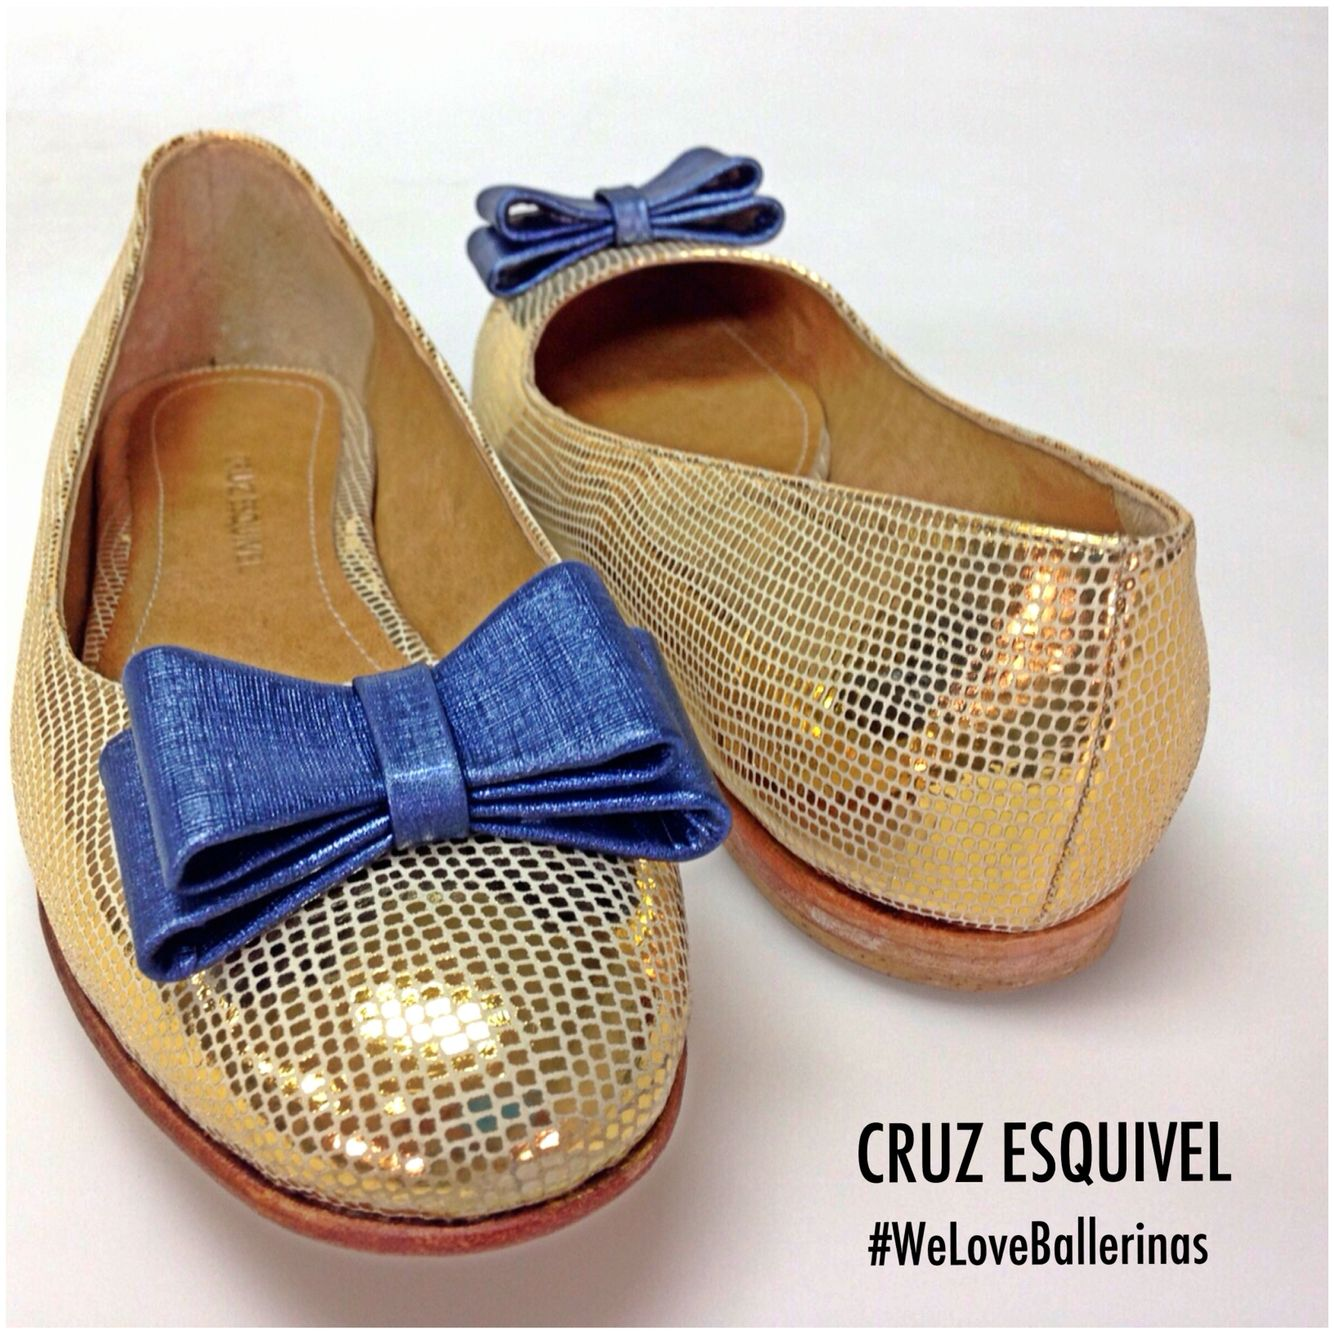 CRUZ ESQUIVEL leather handmade ballerinas Showroom Palermo